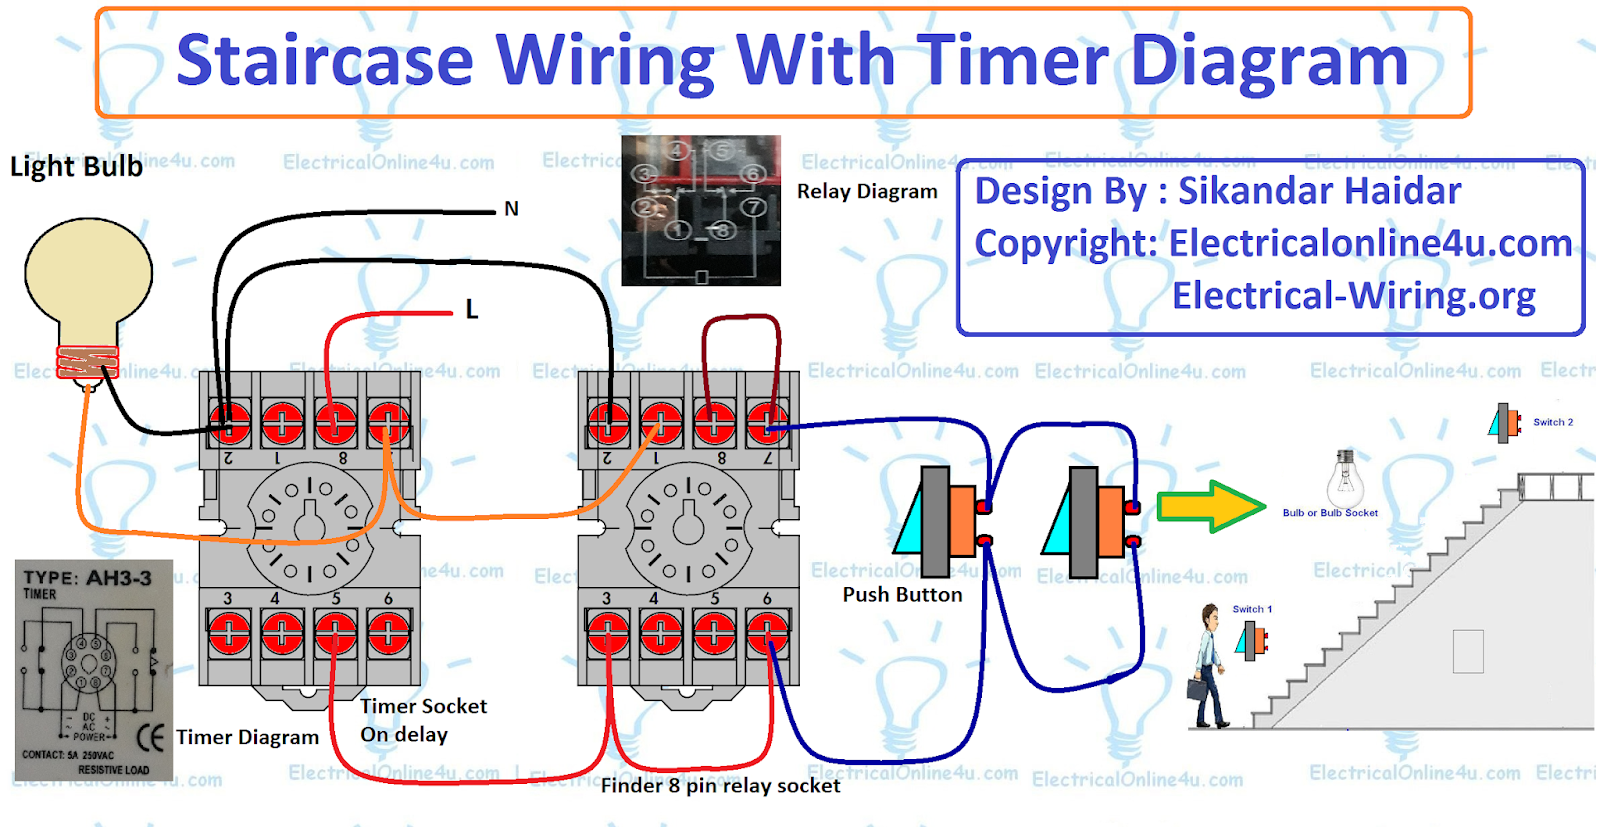 Wiring Diagram Pool Timer Turbo Greddy Smart Diagrams U2022 Rh Emgsolutions Co